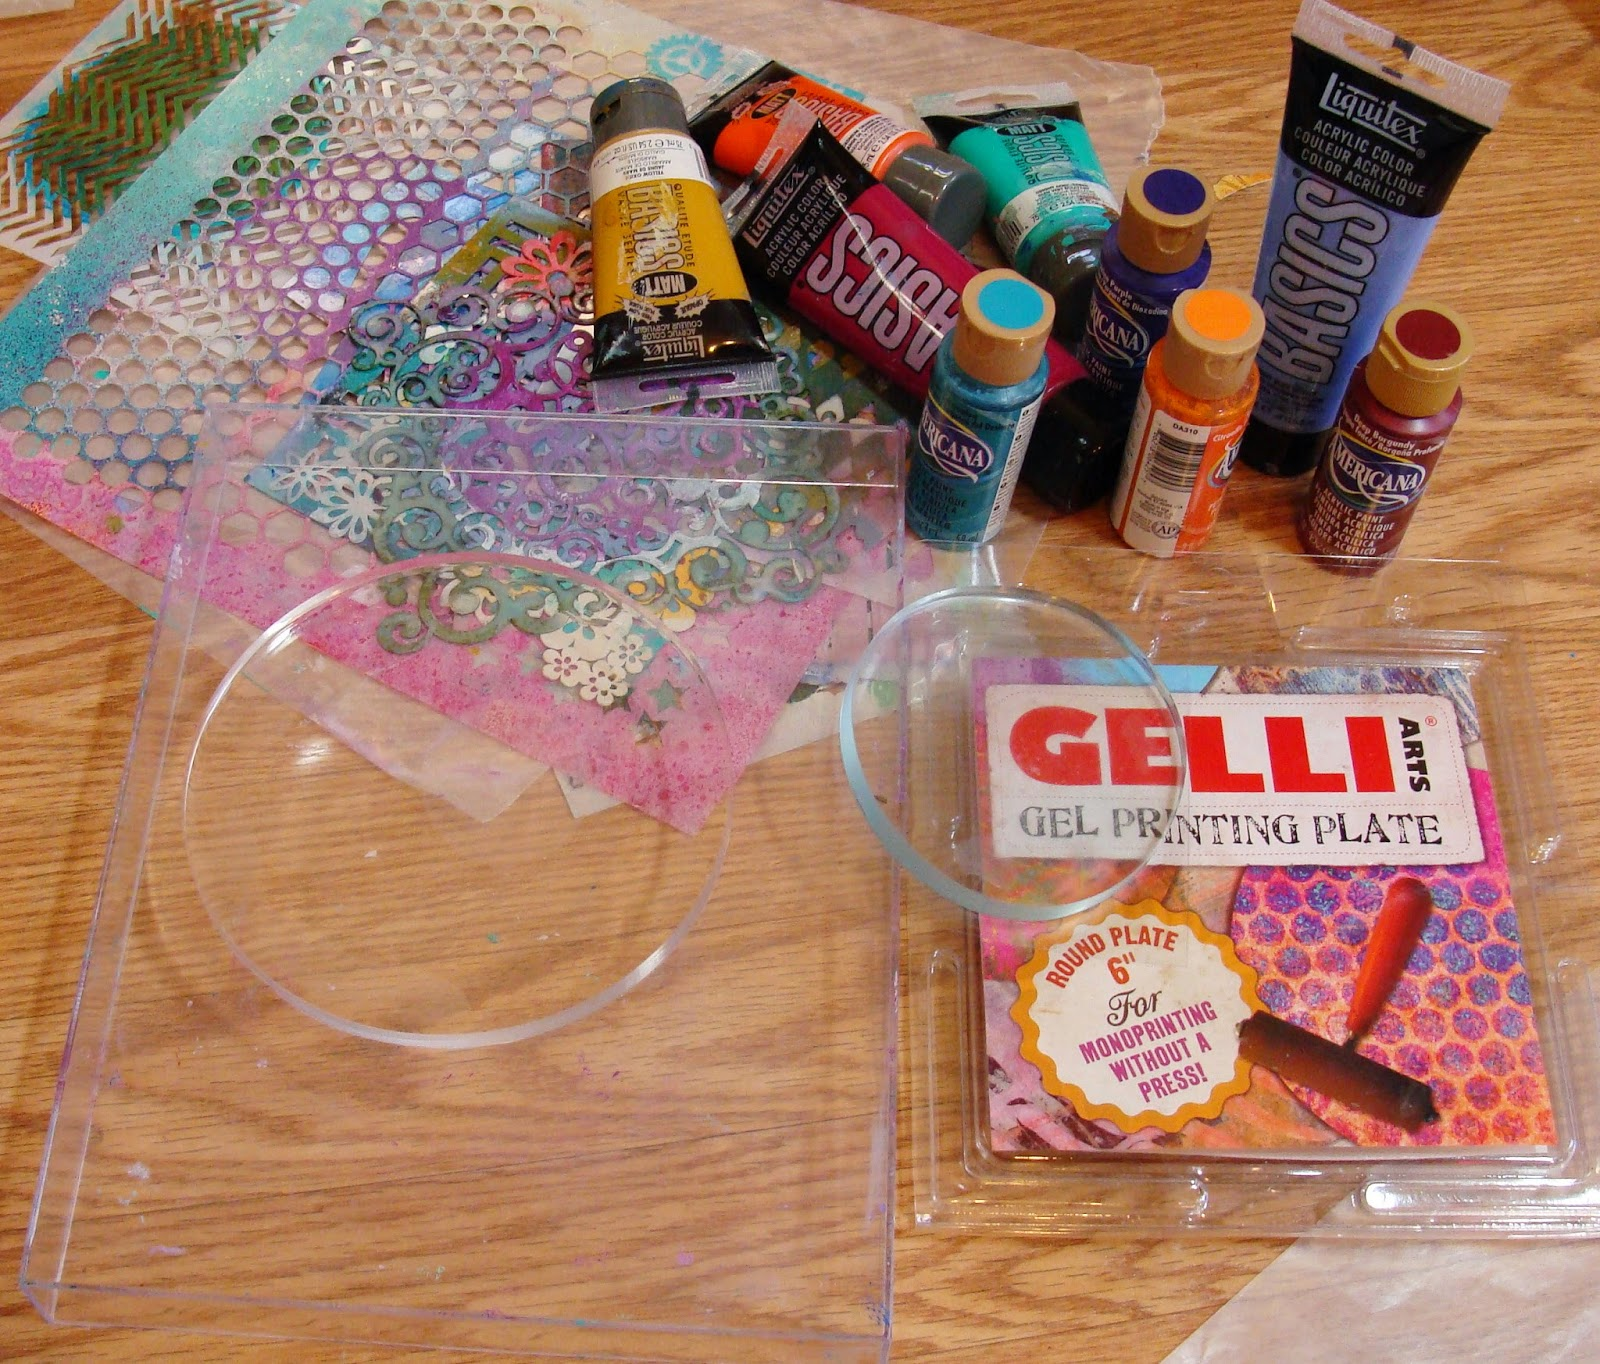 My art journal round gelli plate tutorial part 1 words anything clear and hard plastic glass mounting stamp block etc as long as you can see through it and the gelli plate adheres to it well baditri Gallery